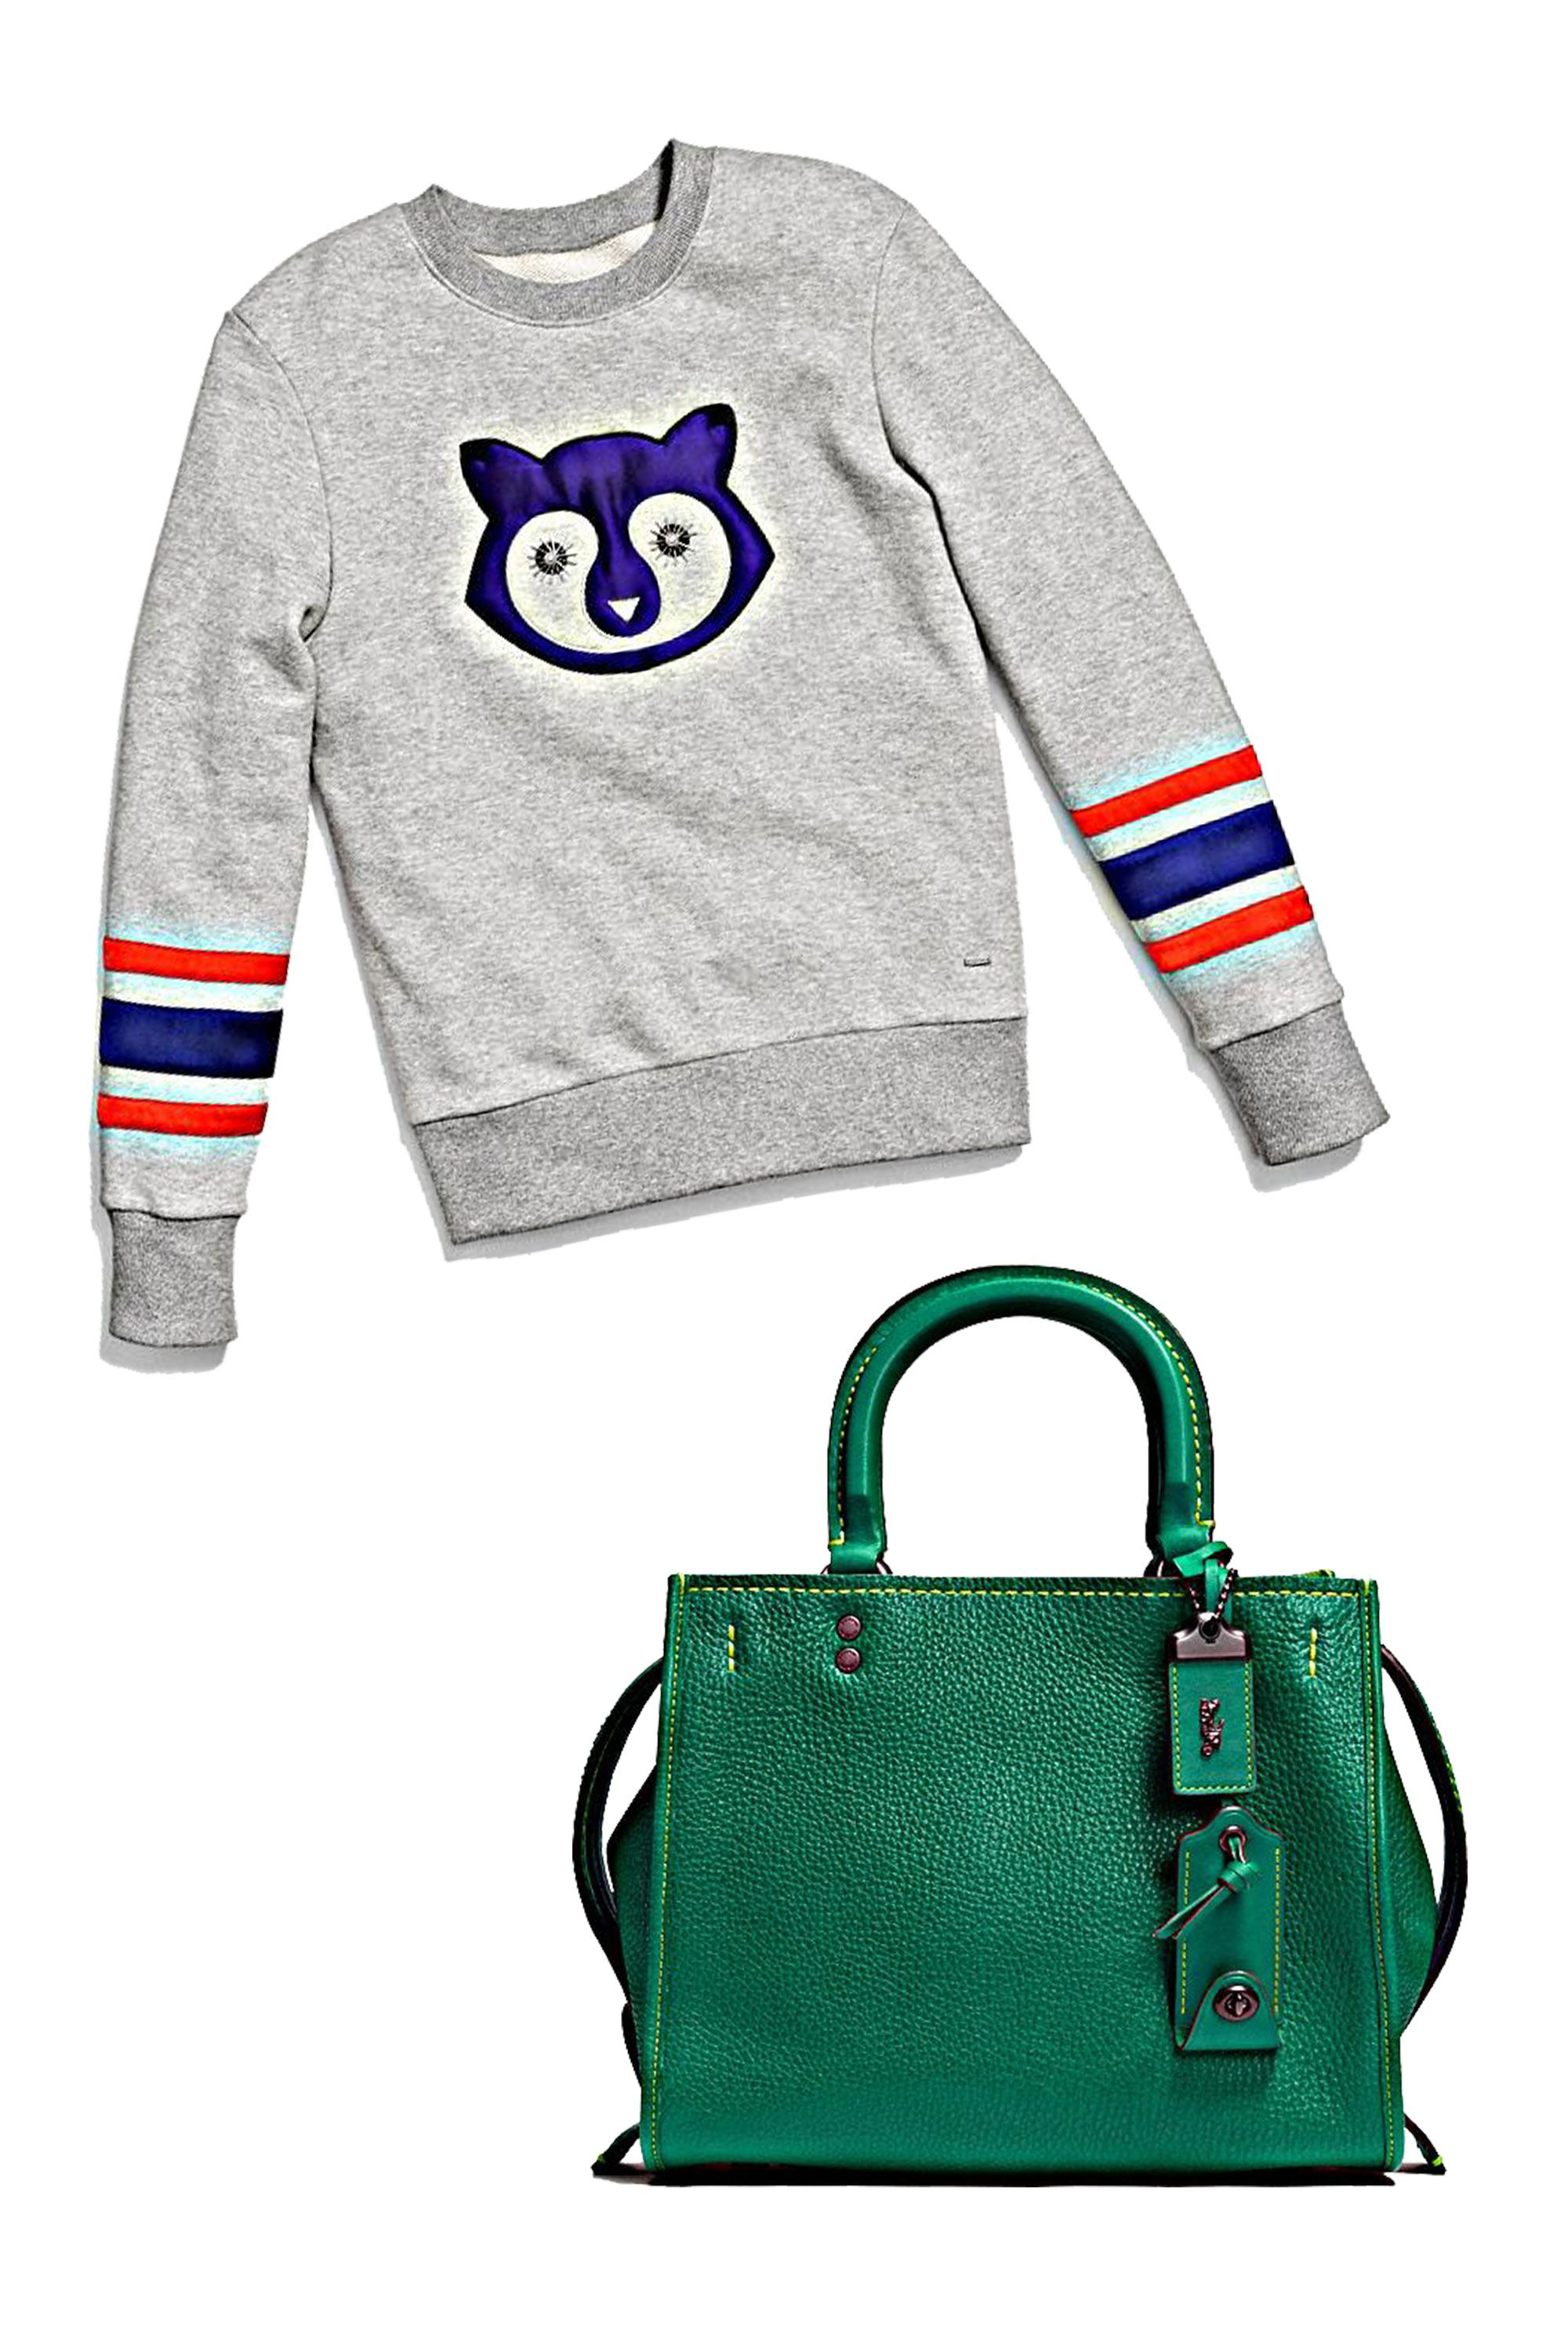 "<p>Think: time-honored silhouettes in collegiate-inspired solid colors, like this kelly-green satchel paired with a charming striped-sleeve sweatshirt—all of these pieces will work great with your favorite loafers and khakis! </p><p><br> </p><p><em data-redactor-tag=""em"">Coach 1941 Embellished Raccoon Sweatshirt, $395, <a rel=""noskim"" href=""http://www.coach.com/coach-designer-tops-embellished-raccoon-sweatshirt/56478.html?CID=D_B_HBZ_11843"" target=""_blank"">coach.com</a>; Coach 1941 Rogue Bag 25 in Glovetanned Pebble Leather, $595, <a rel=""noskim"" href=""http://www.coach.com/rogue-bag-25-in-glovetanned-pebble-leather/54536.html?dwvar_color=BPL4A&CID=D_B_HBZ_11882"" target=""_blank"">coach.com</a></em><span class=""redactor-invisible-space"" data-verified=""redactor"" data-redactor-tag=""span"" data-redactor-class=""redactor-invisible-space""><em data-redactor-tag=""em""></em></span><br></p>"